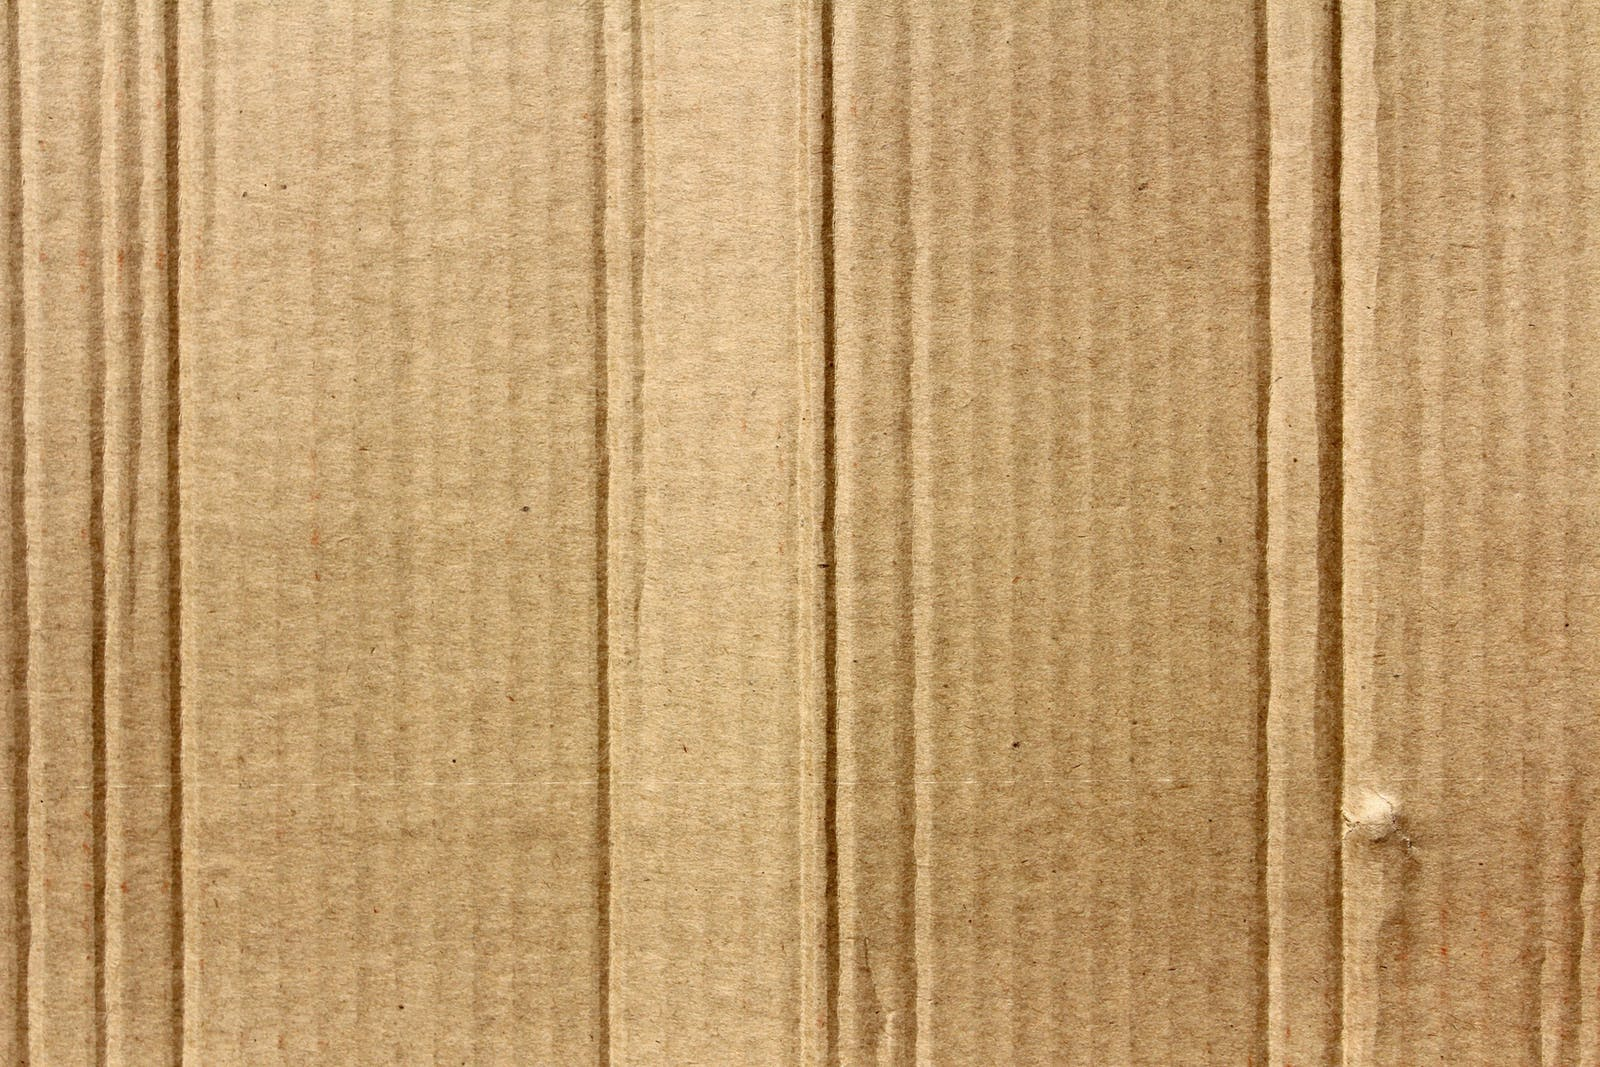 carboard box